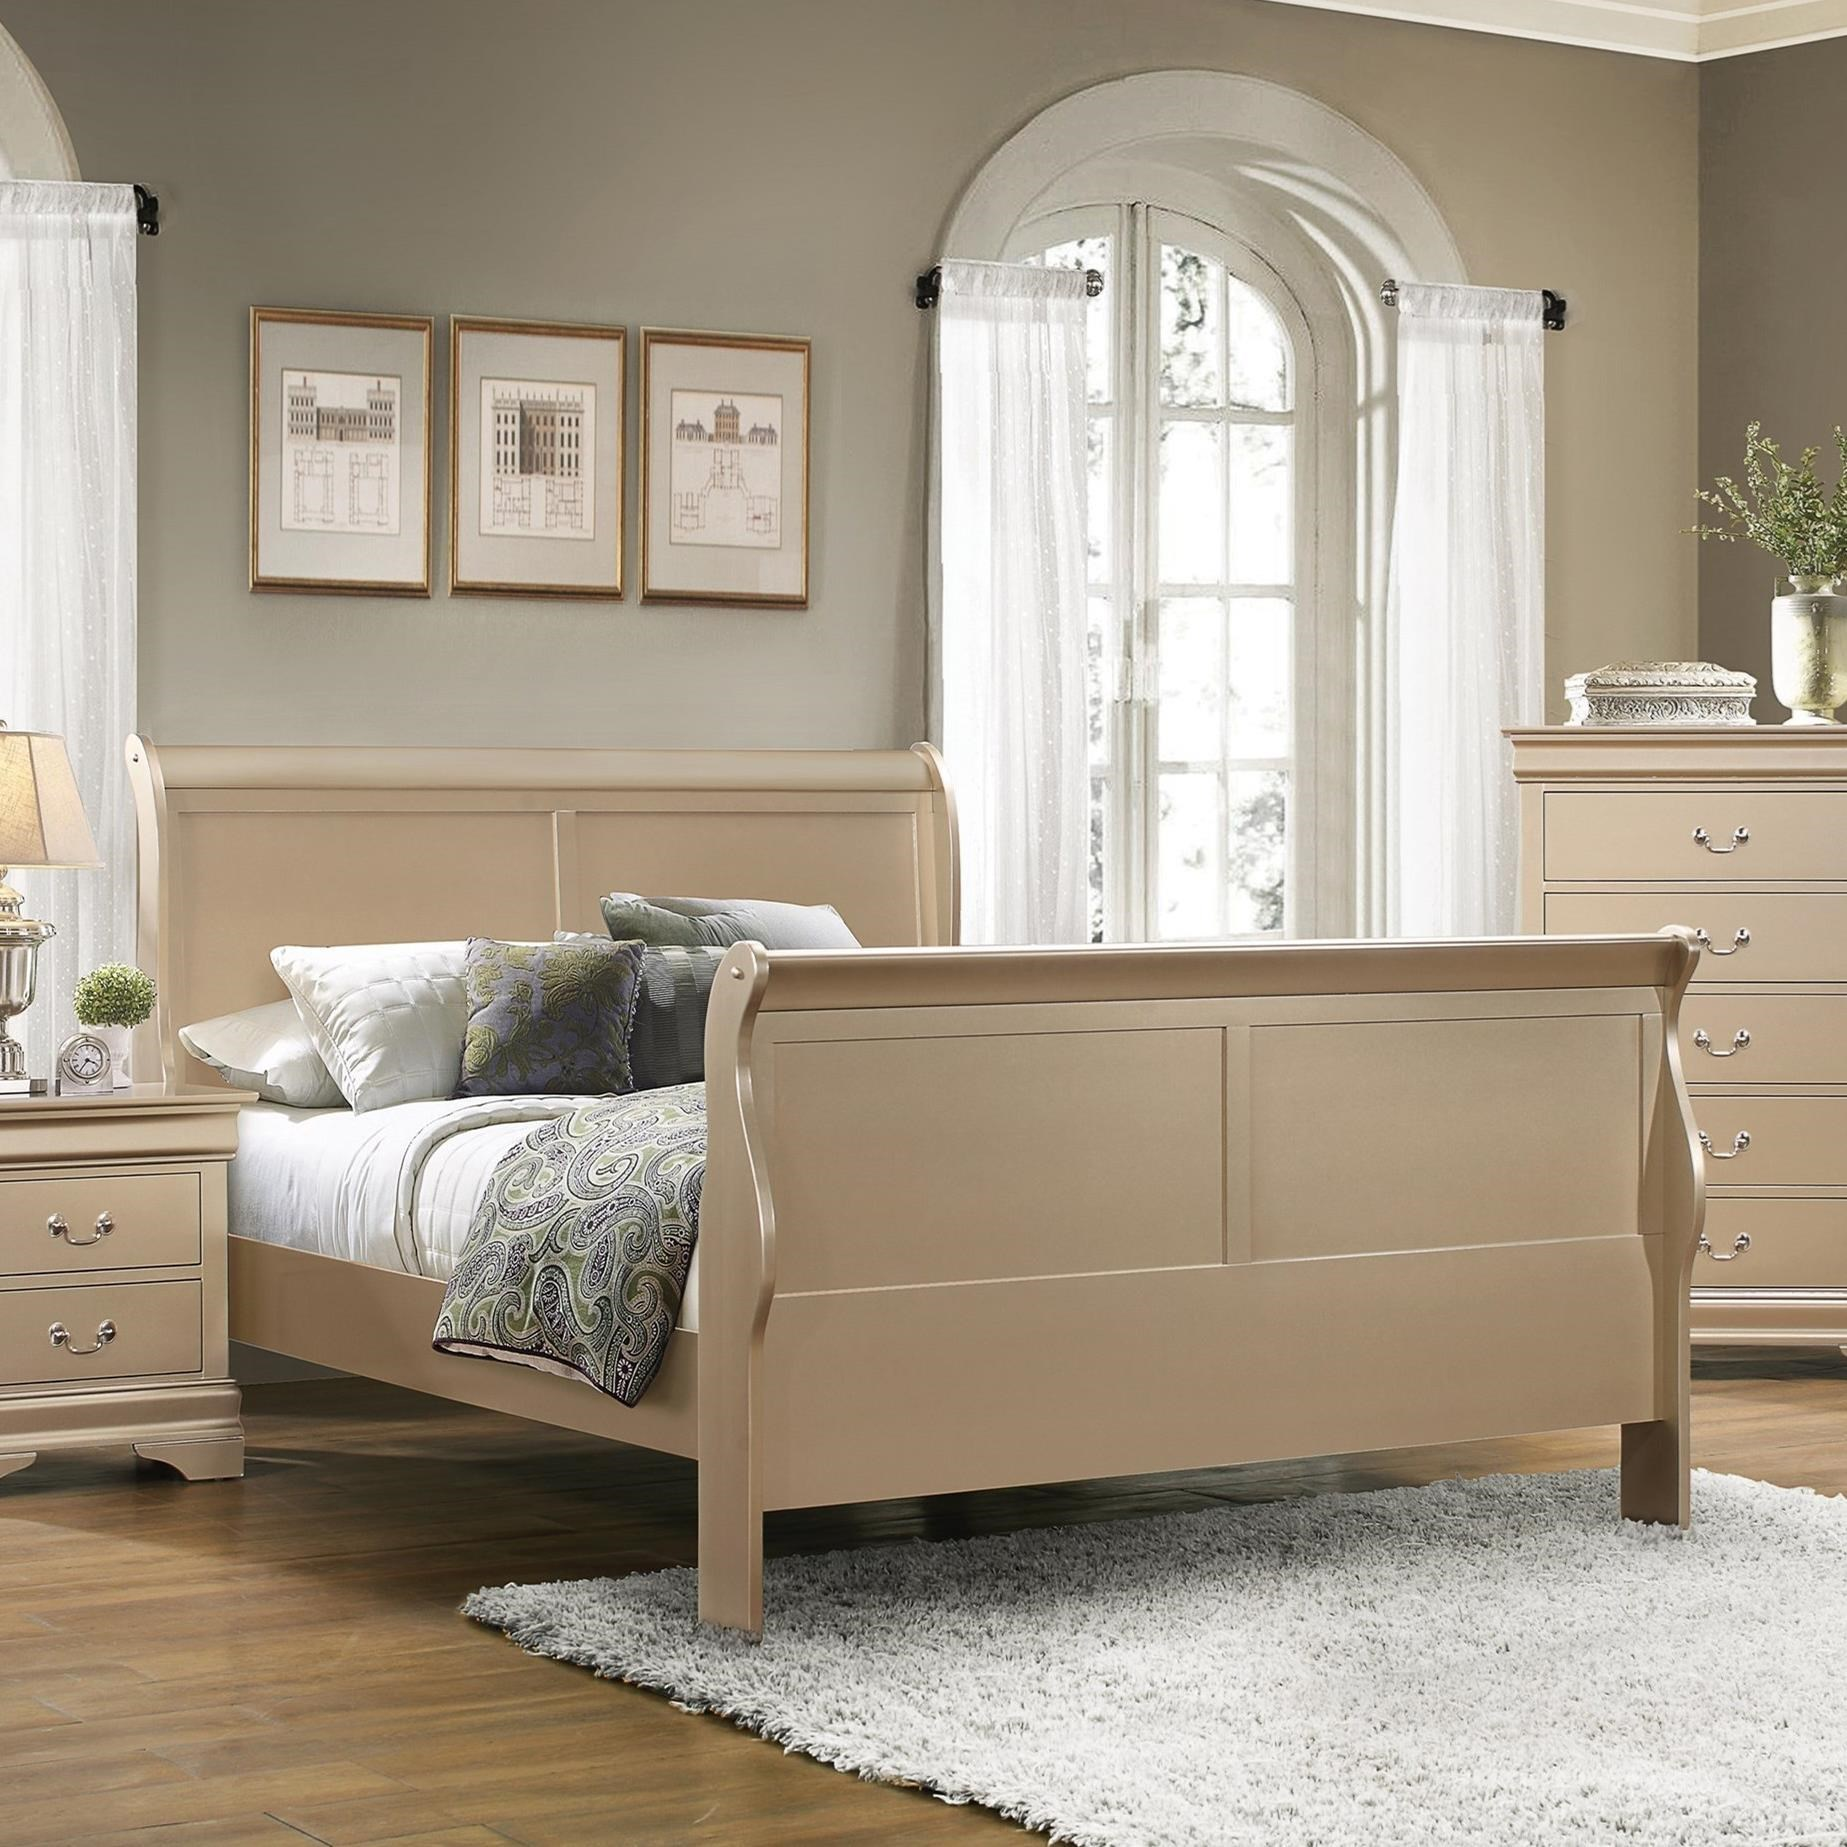 Coaster Louis Philippe Full Sleigh Bed - Item Number: 204421F